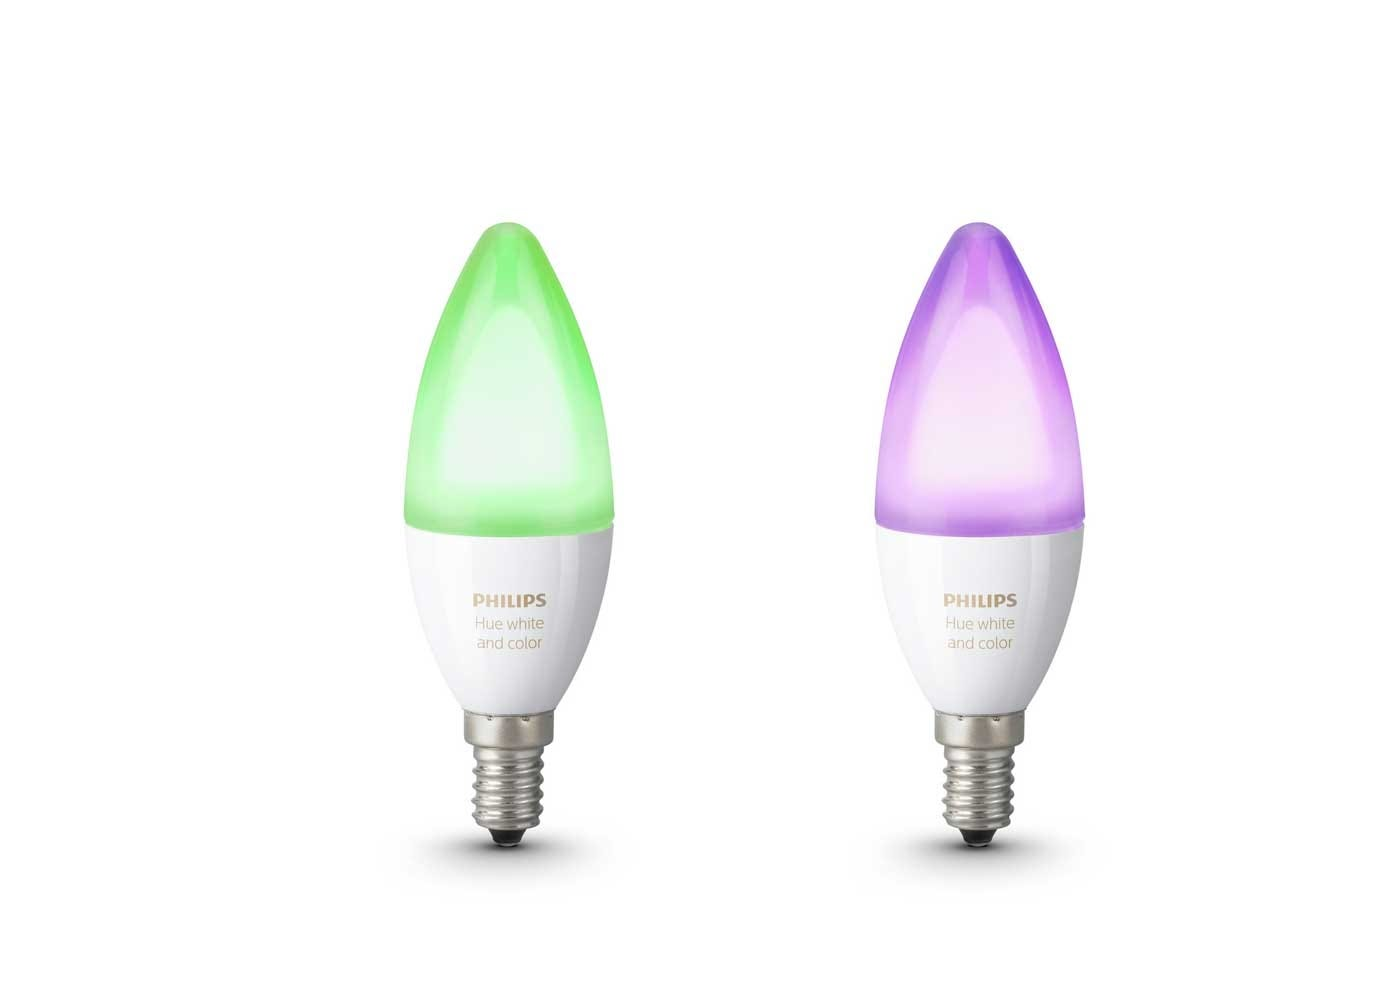 Use the Philips app to change the colour of these E14 bulbs